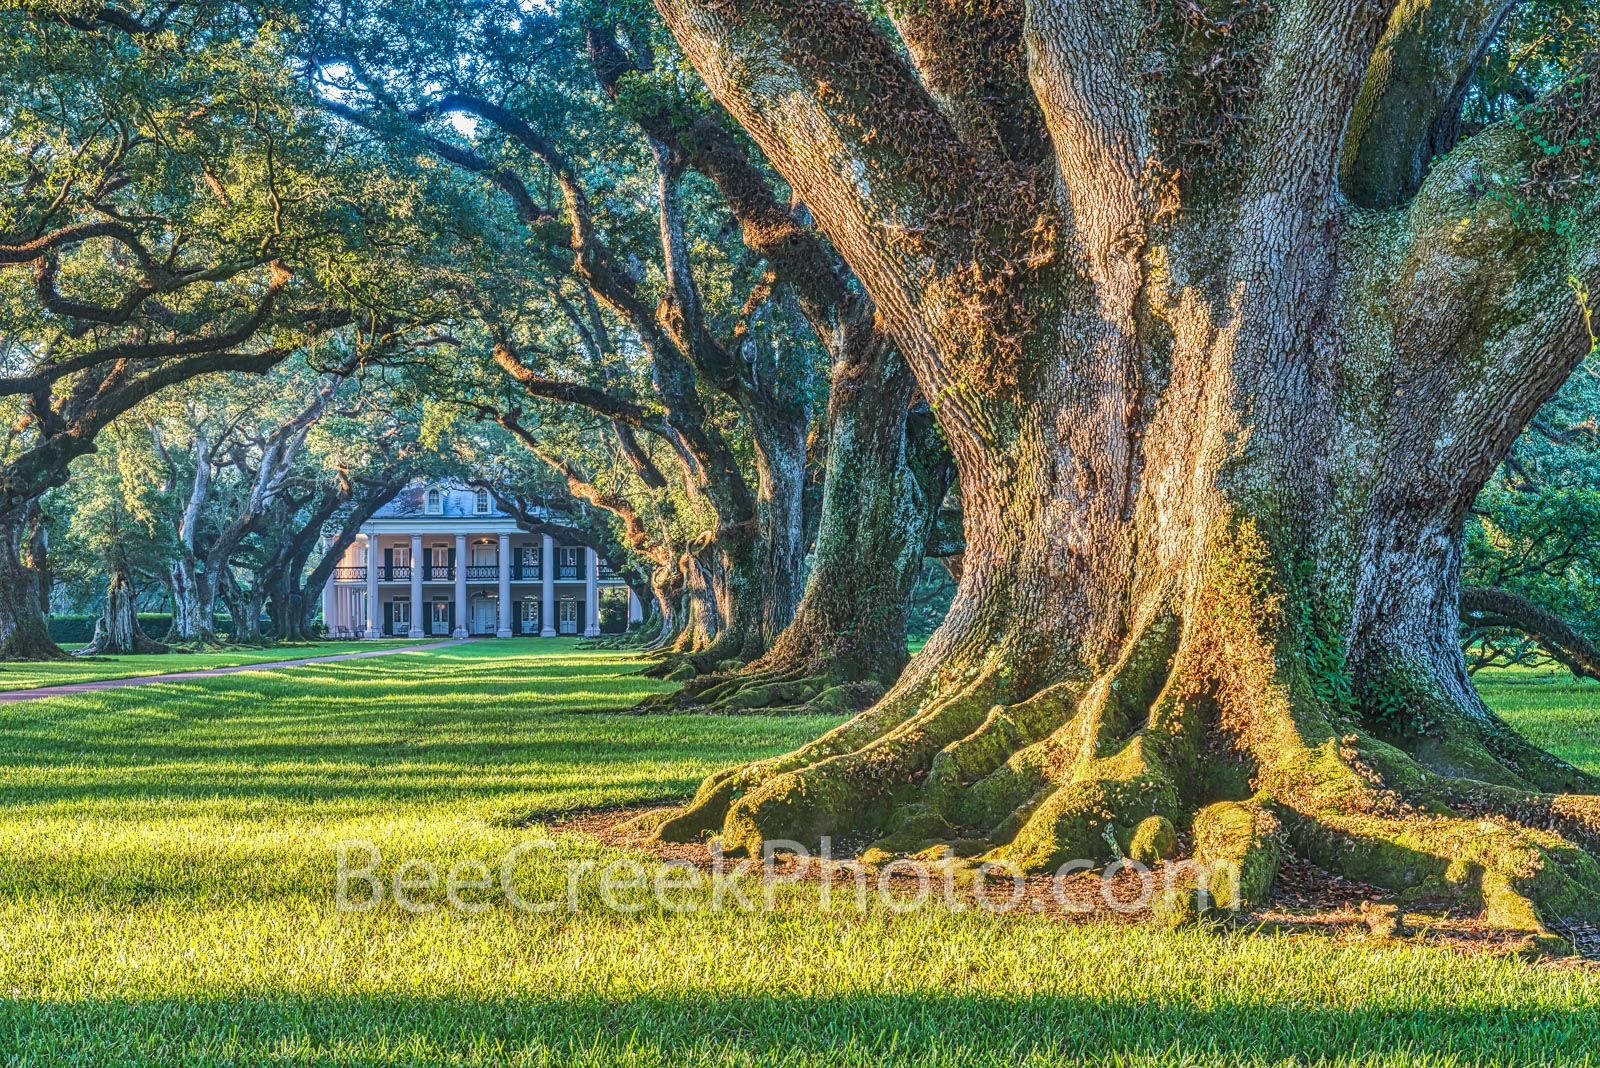 Lousiana, Oak Alley Plantation, sunrise, big house, branches, mansion, oak trees, plantation, roots, sidewalk, slaves, sugar cane, canopied path, seven oaks, oak valley, National Historic landmark, Mi, photo